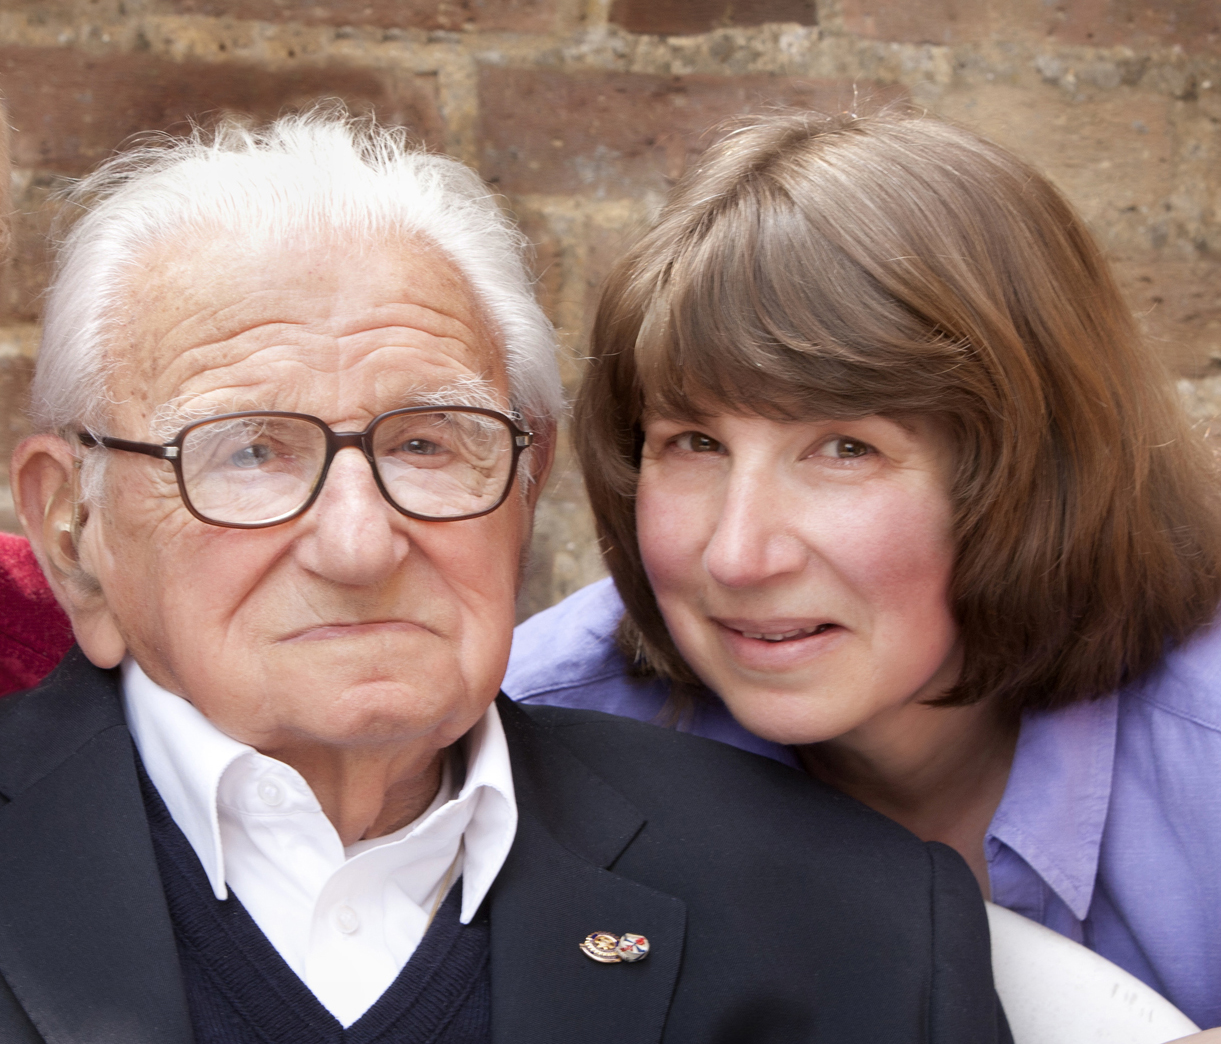 HMDT Blog: Barbara Winton - My father's words must be heard today